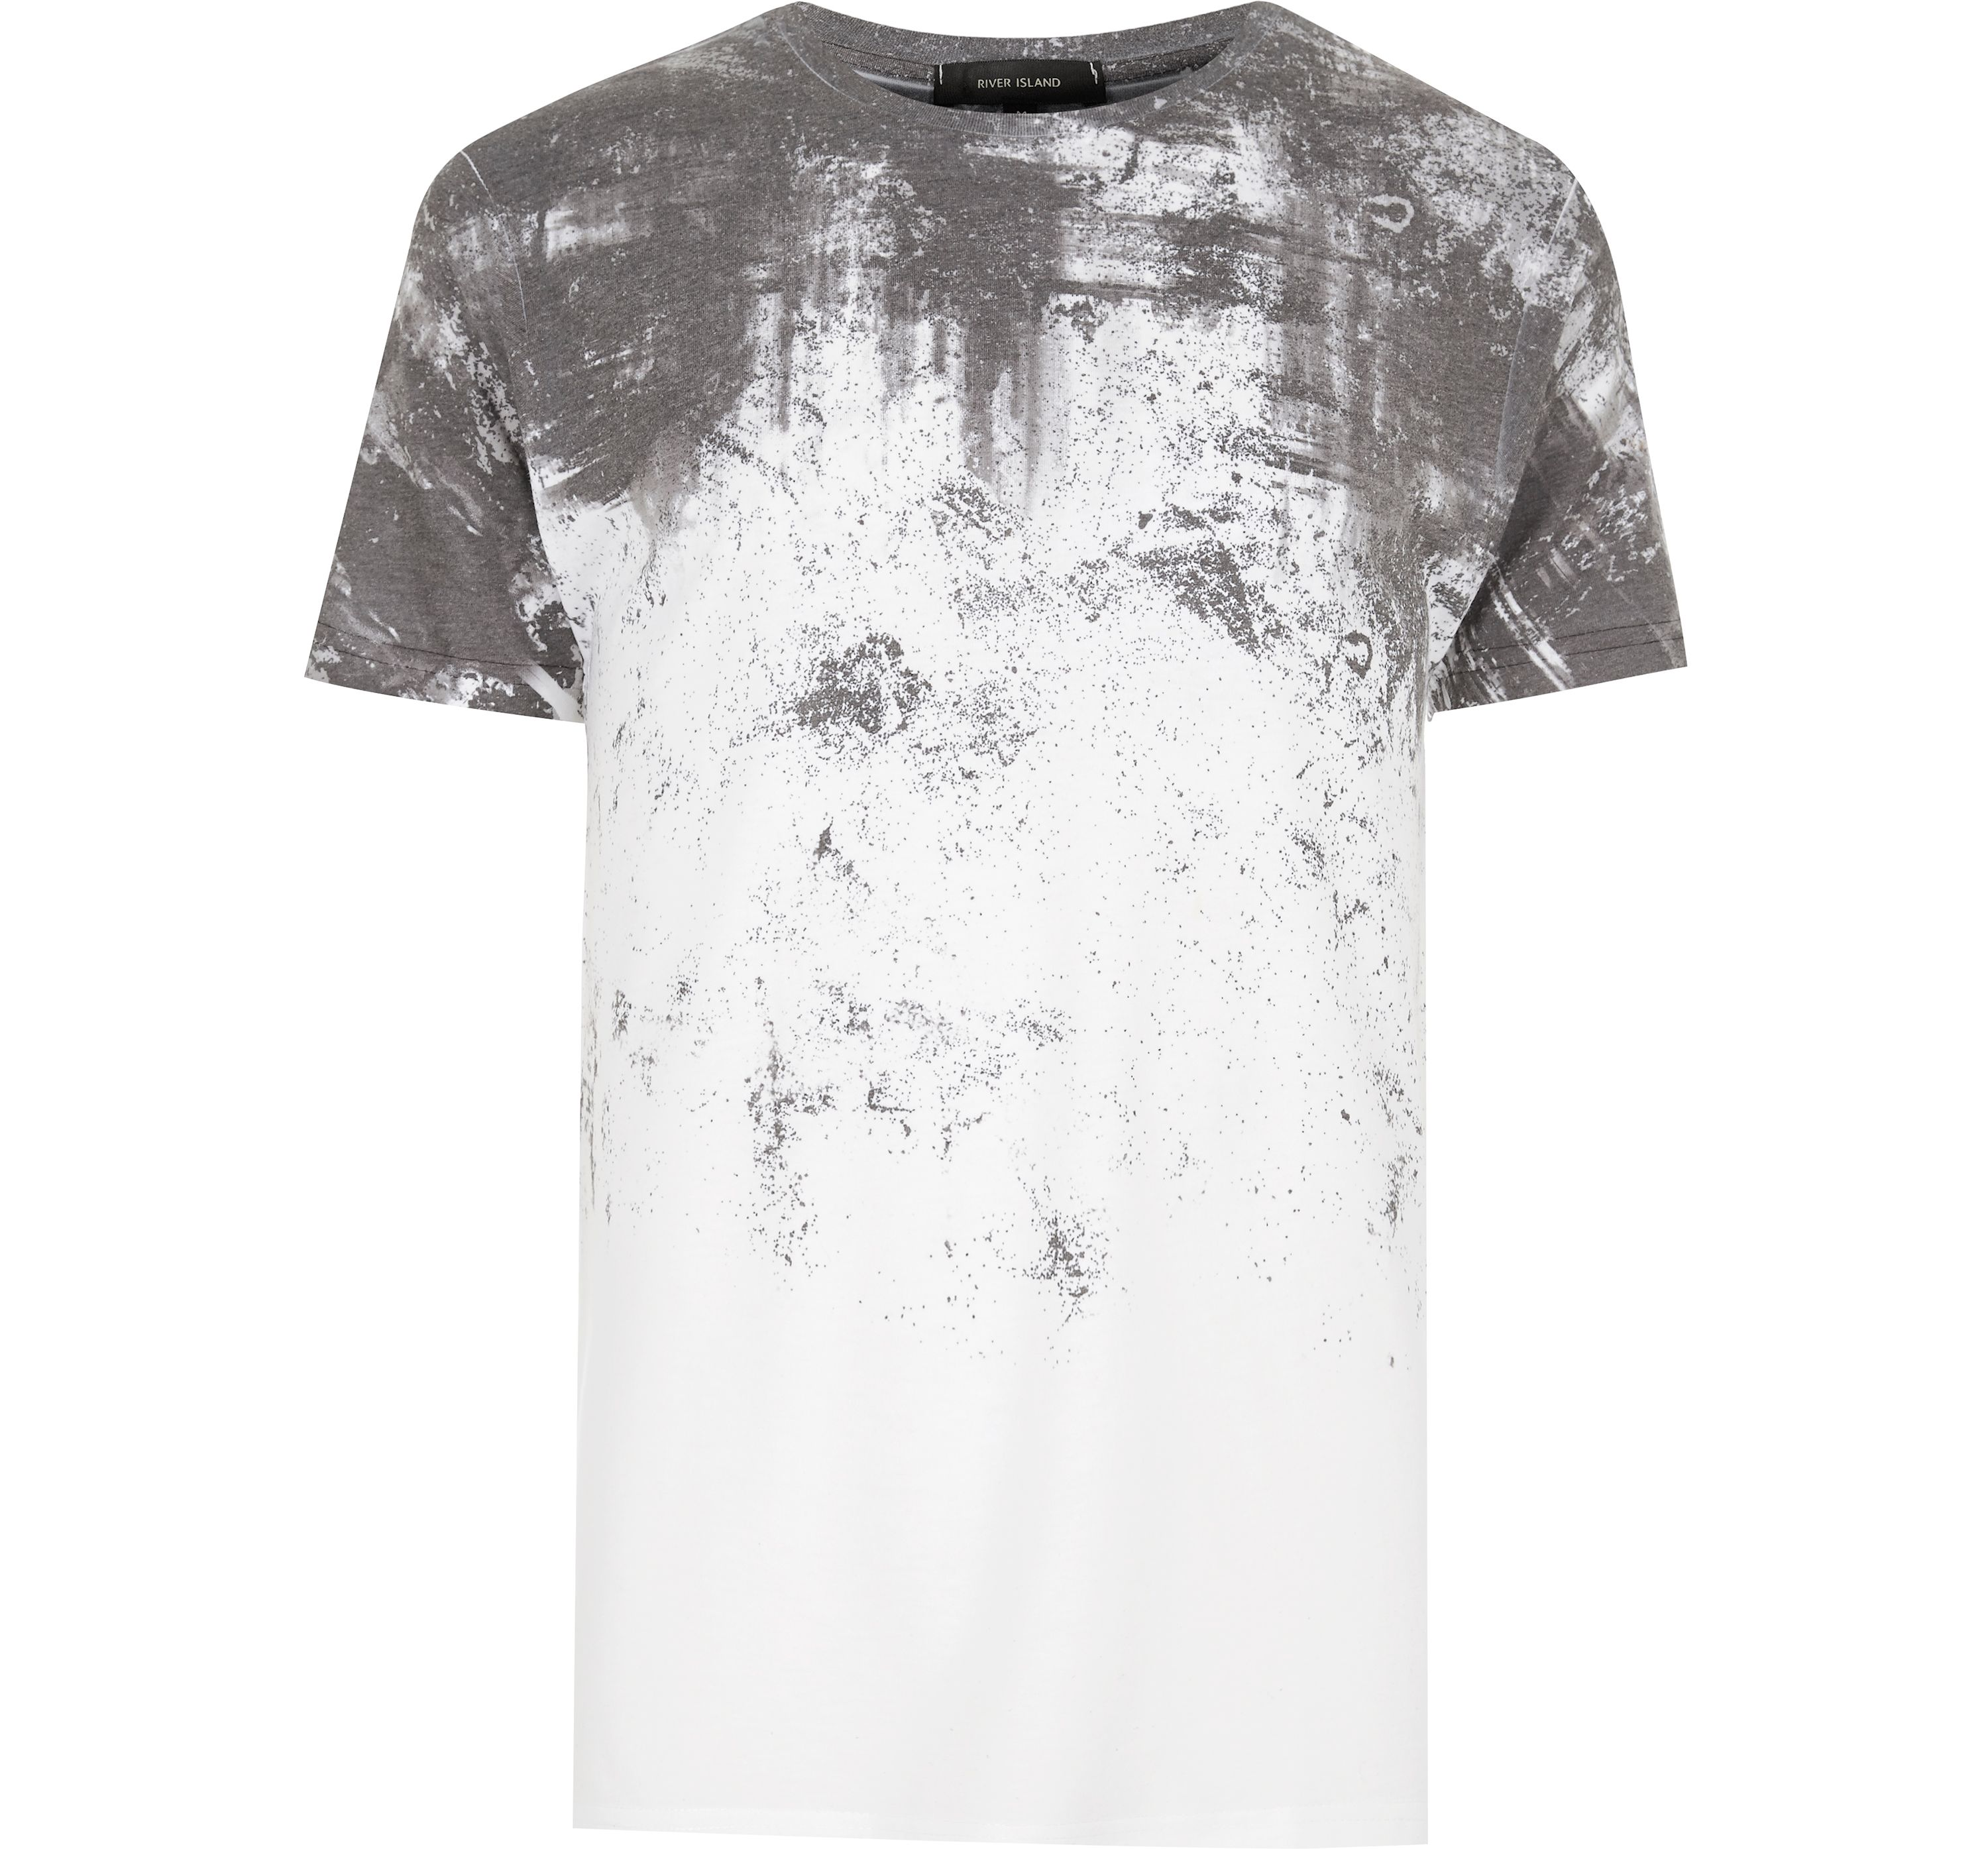 River Island Mens White cracked fade print T-shirt